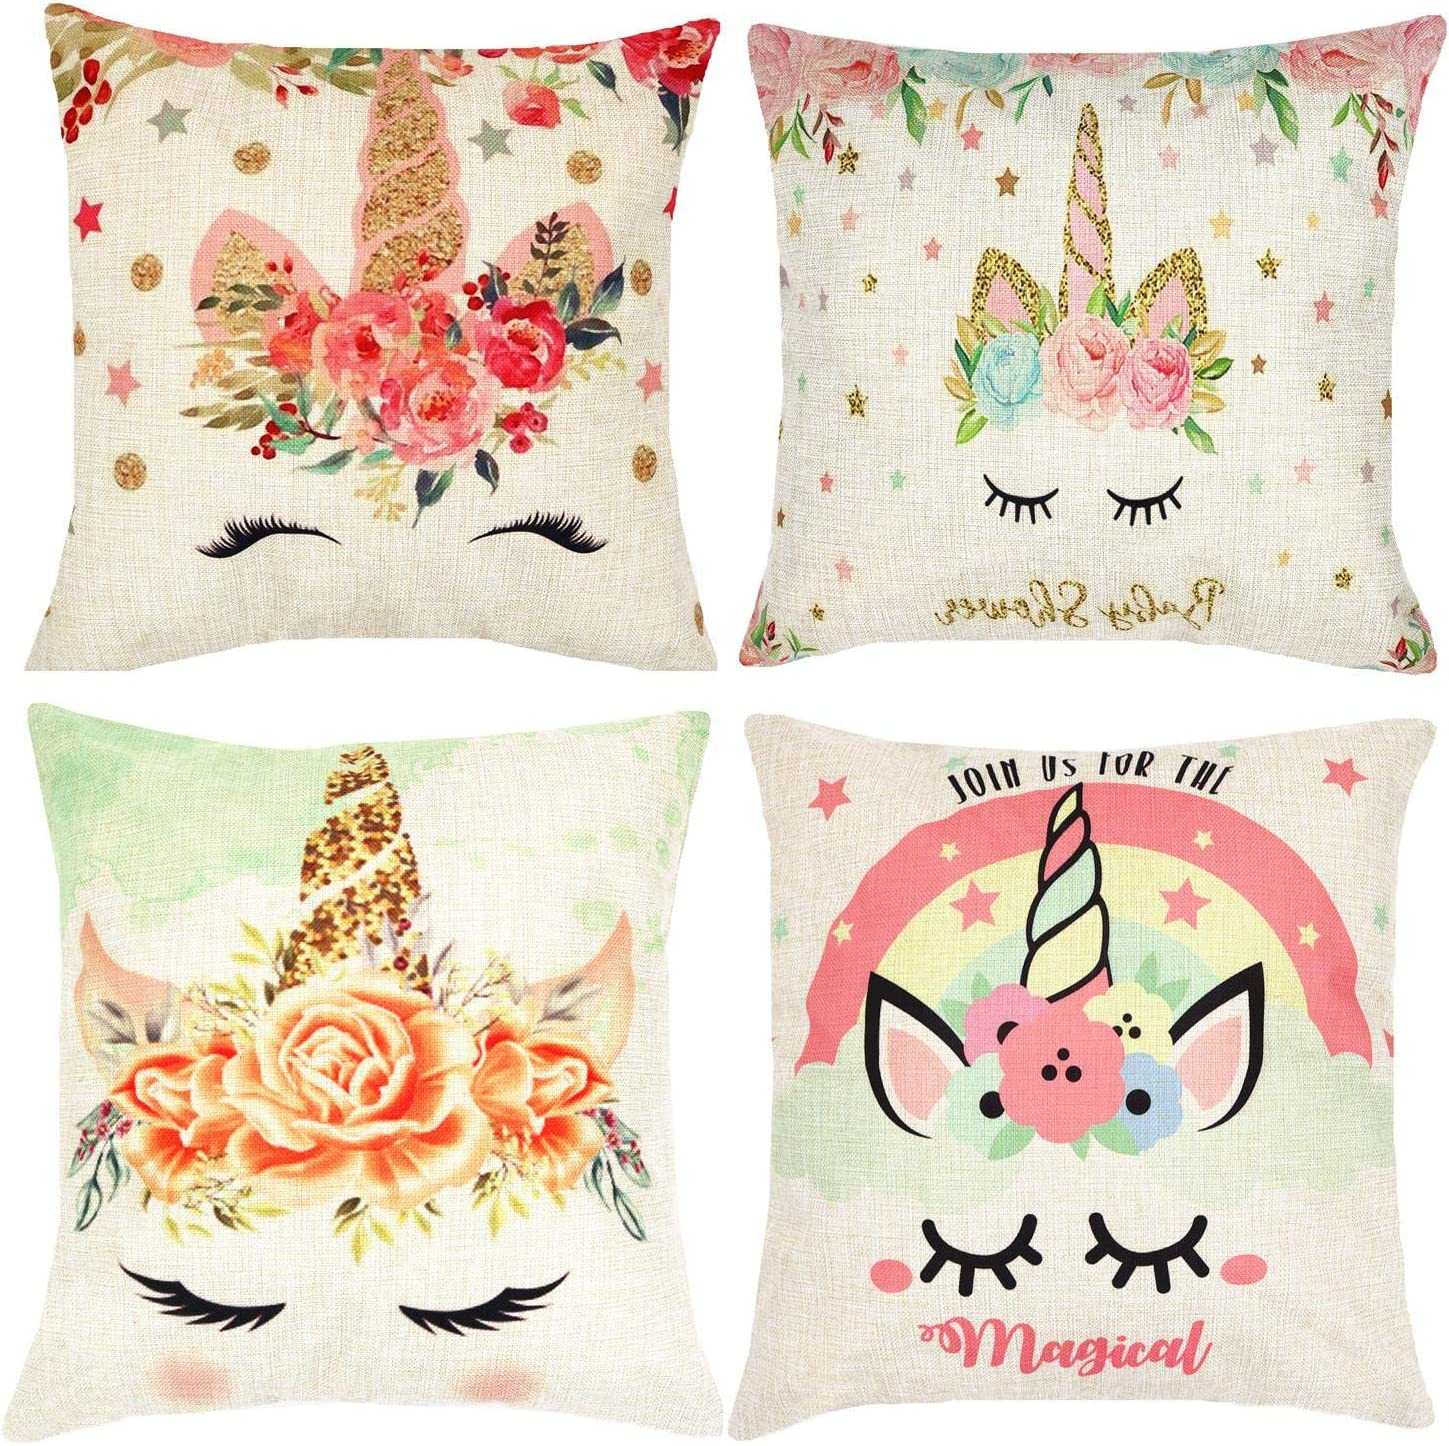 Munzong Set of 4 Unicorn Throw Pillow Covers 18 x 18 Inch, Cotton Linen Square Colorful Pink Wavy Hair for Girls Kids, Flower Cushion Covers for Baby Nursery Room, Home, Office Decor Birthday Gift